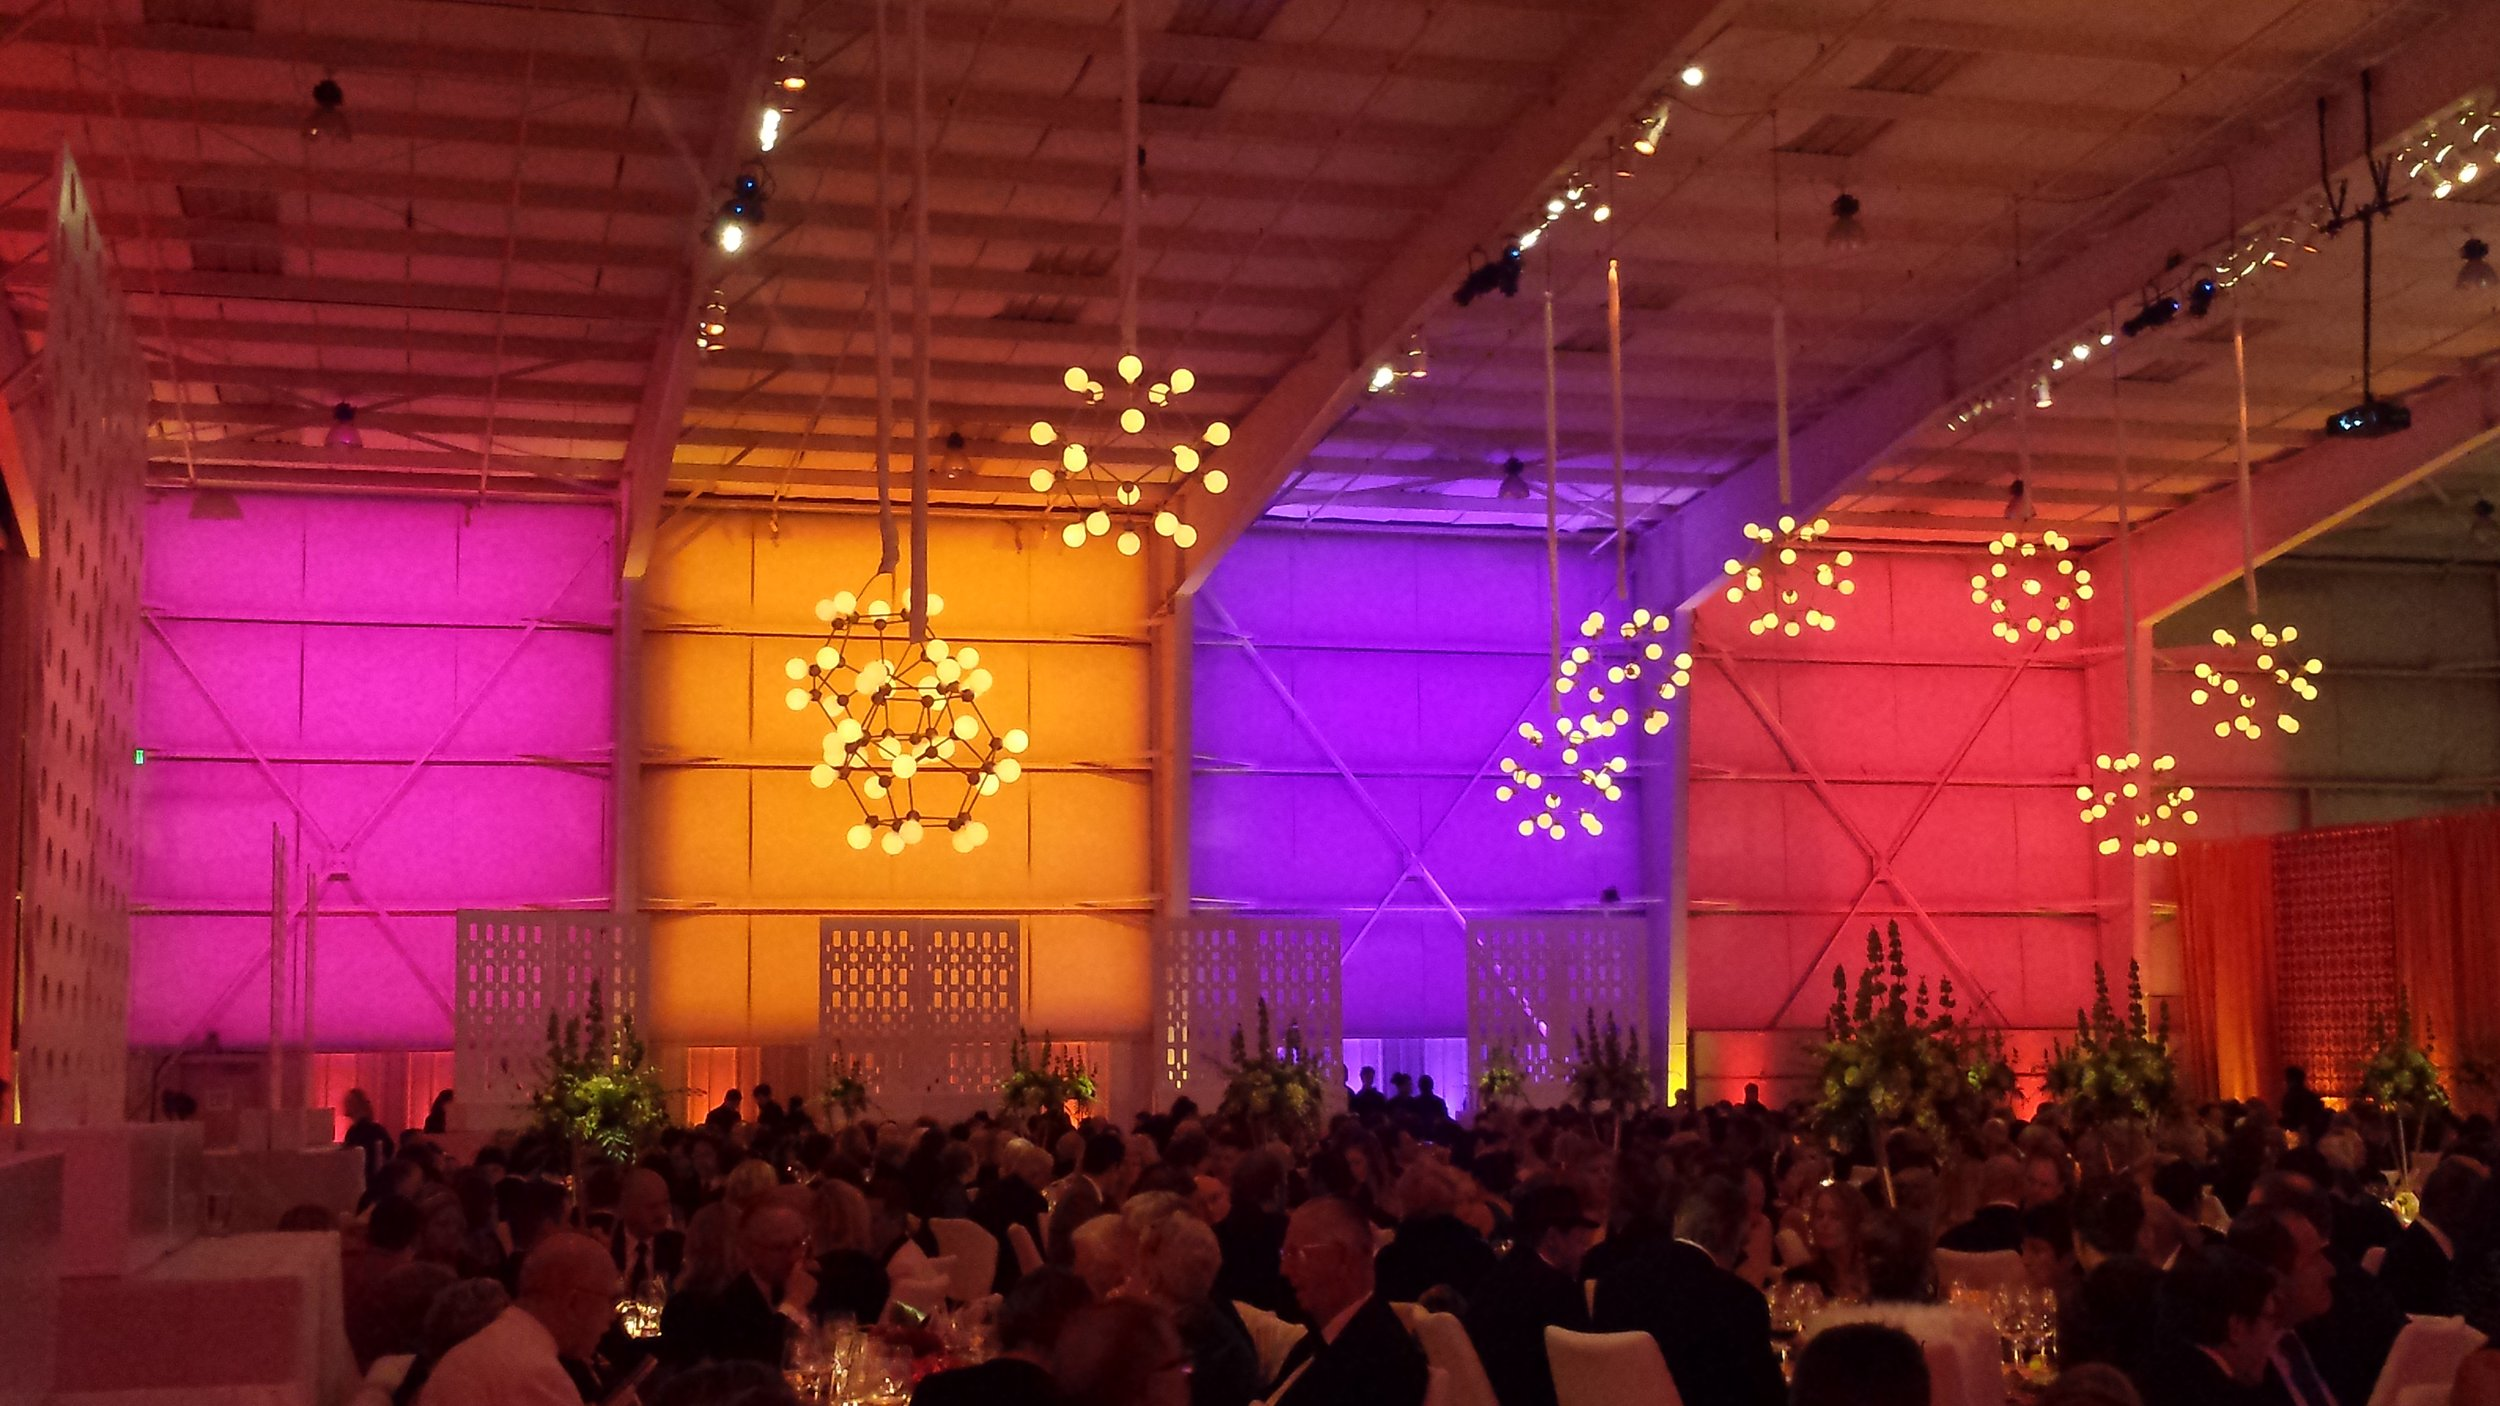 This airplane hangar is transformed into a festive party through the use of color and light.